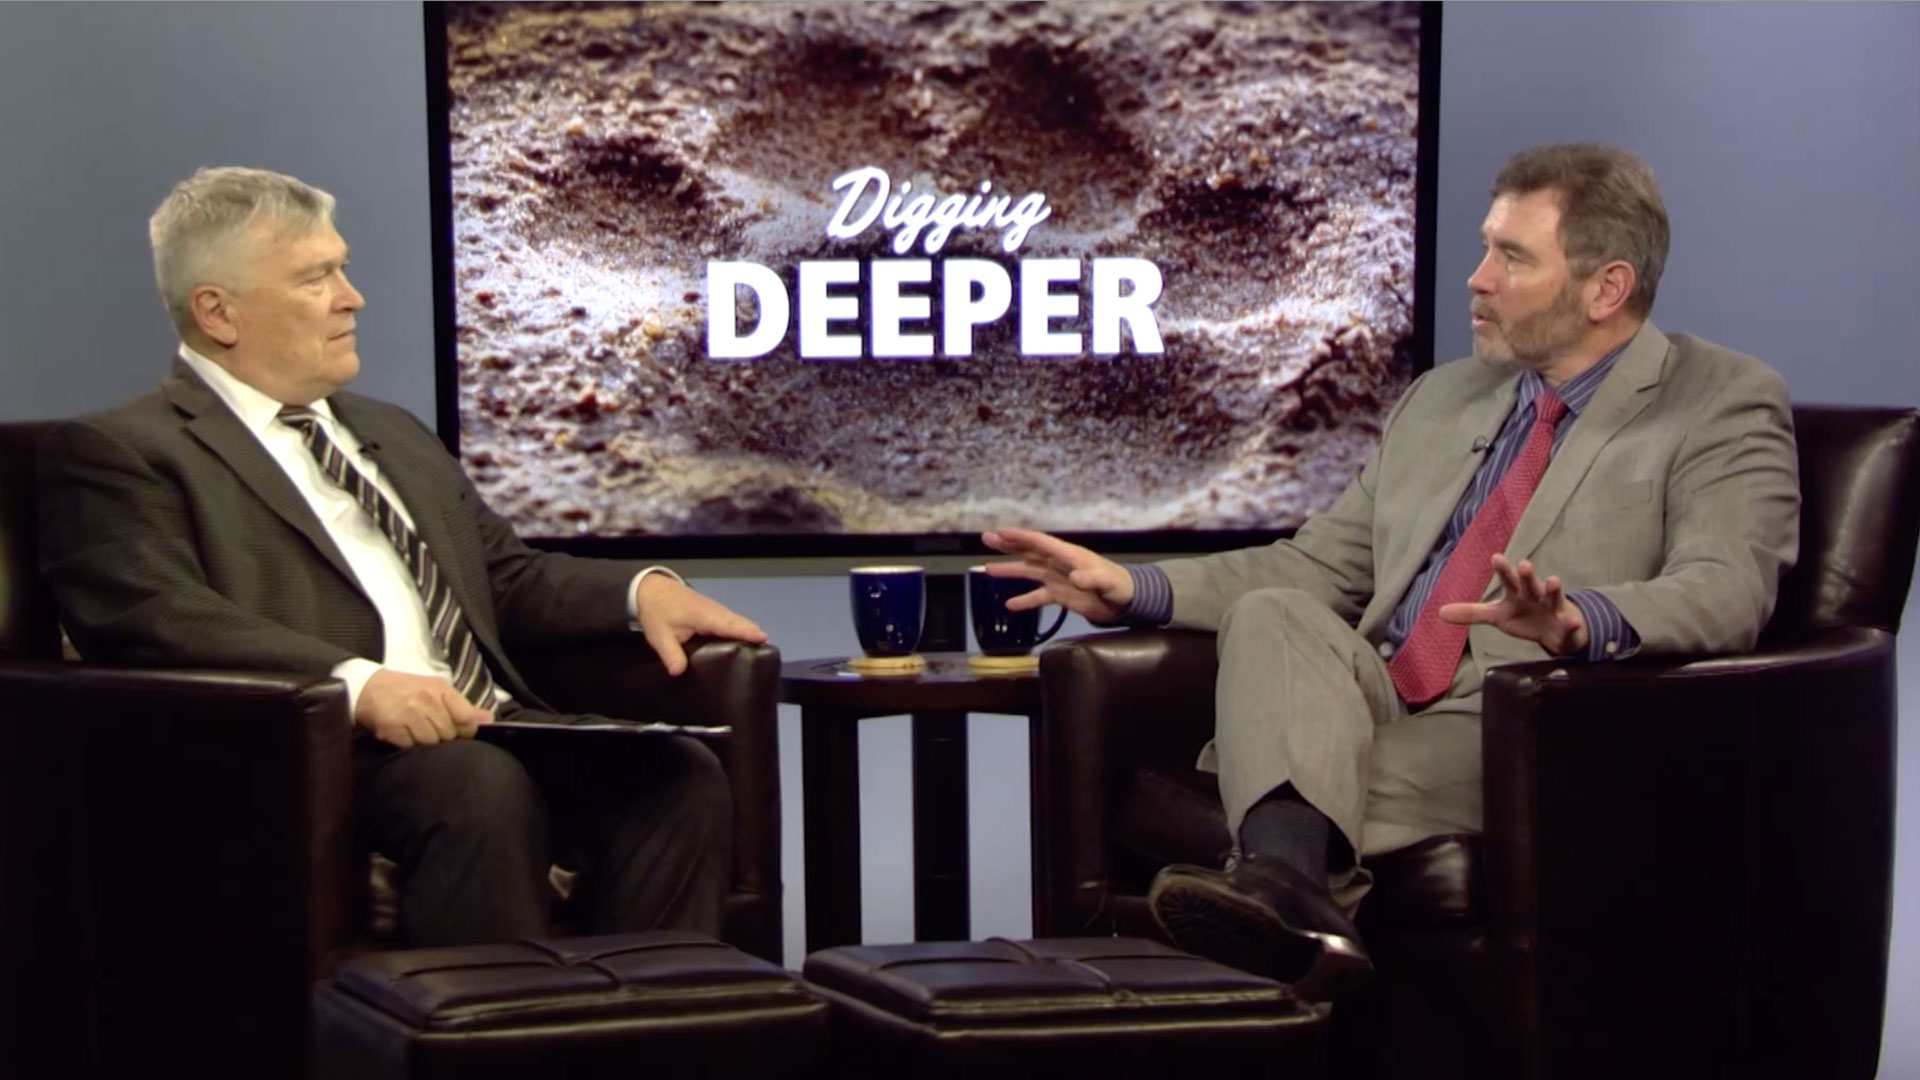 Eric Barron and Dennis Davin on the set of Digging Deeper